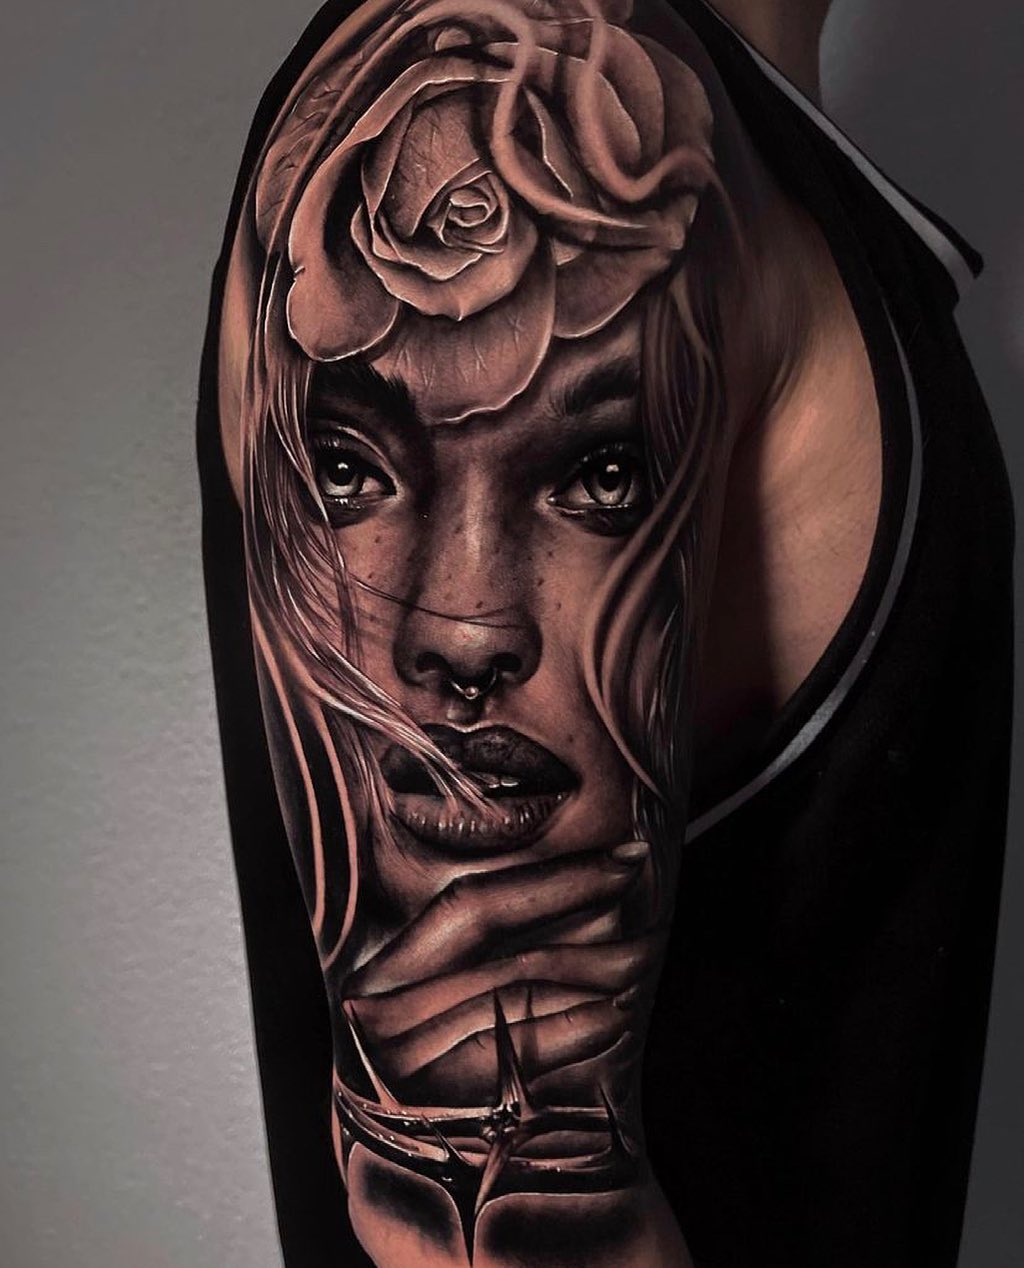 Amazing piece by youngcaviartattoo   Omar is taking bookings for August so if you want to get tattooed get in touch via the enquiry form on our website! 💌  _____________________________________                                  barber_dts easytattoo_uk eternalink dynamiccolor totaltattoo stencilstuff